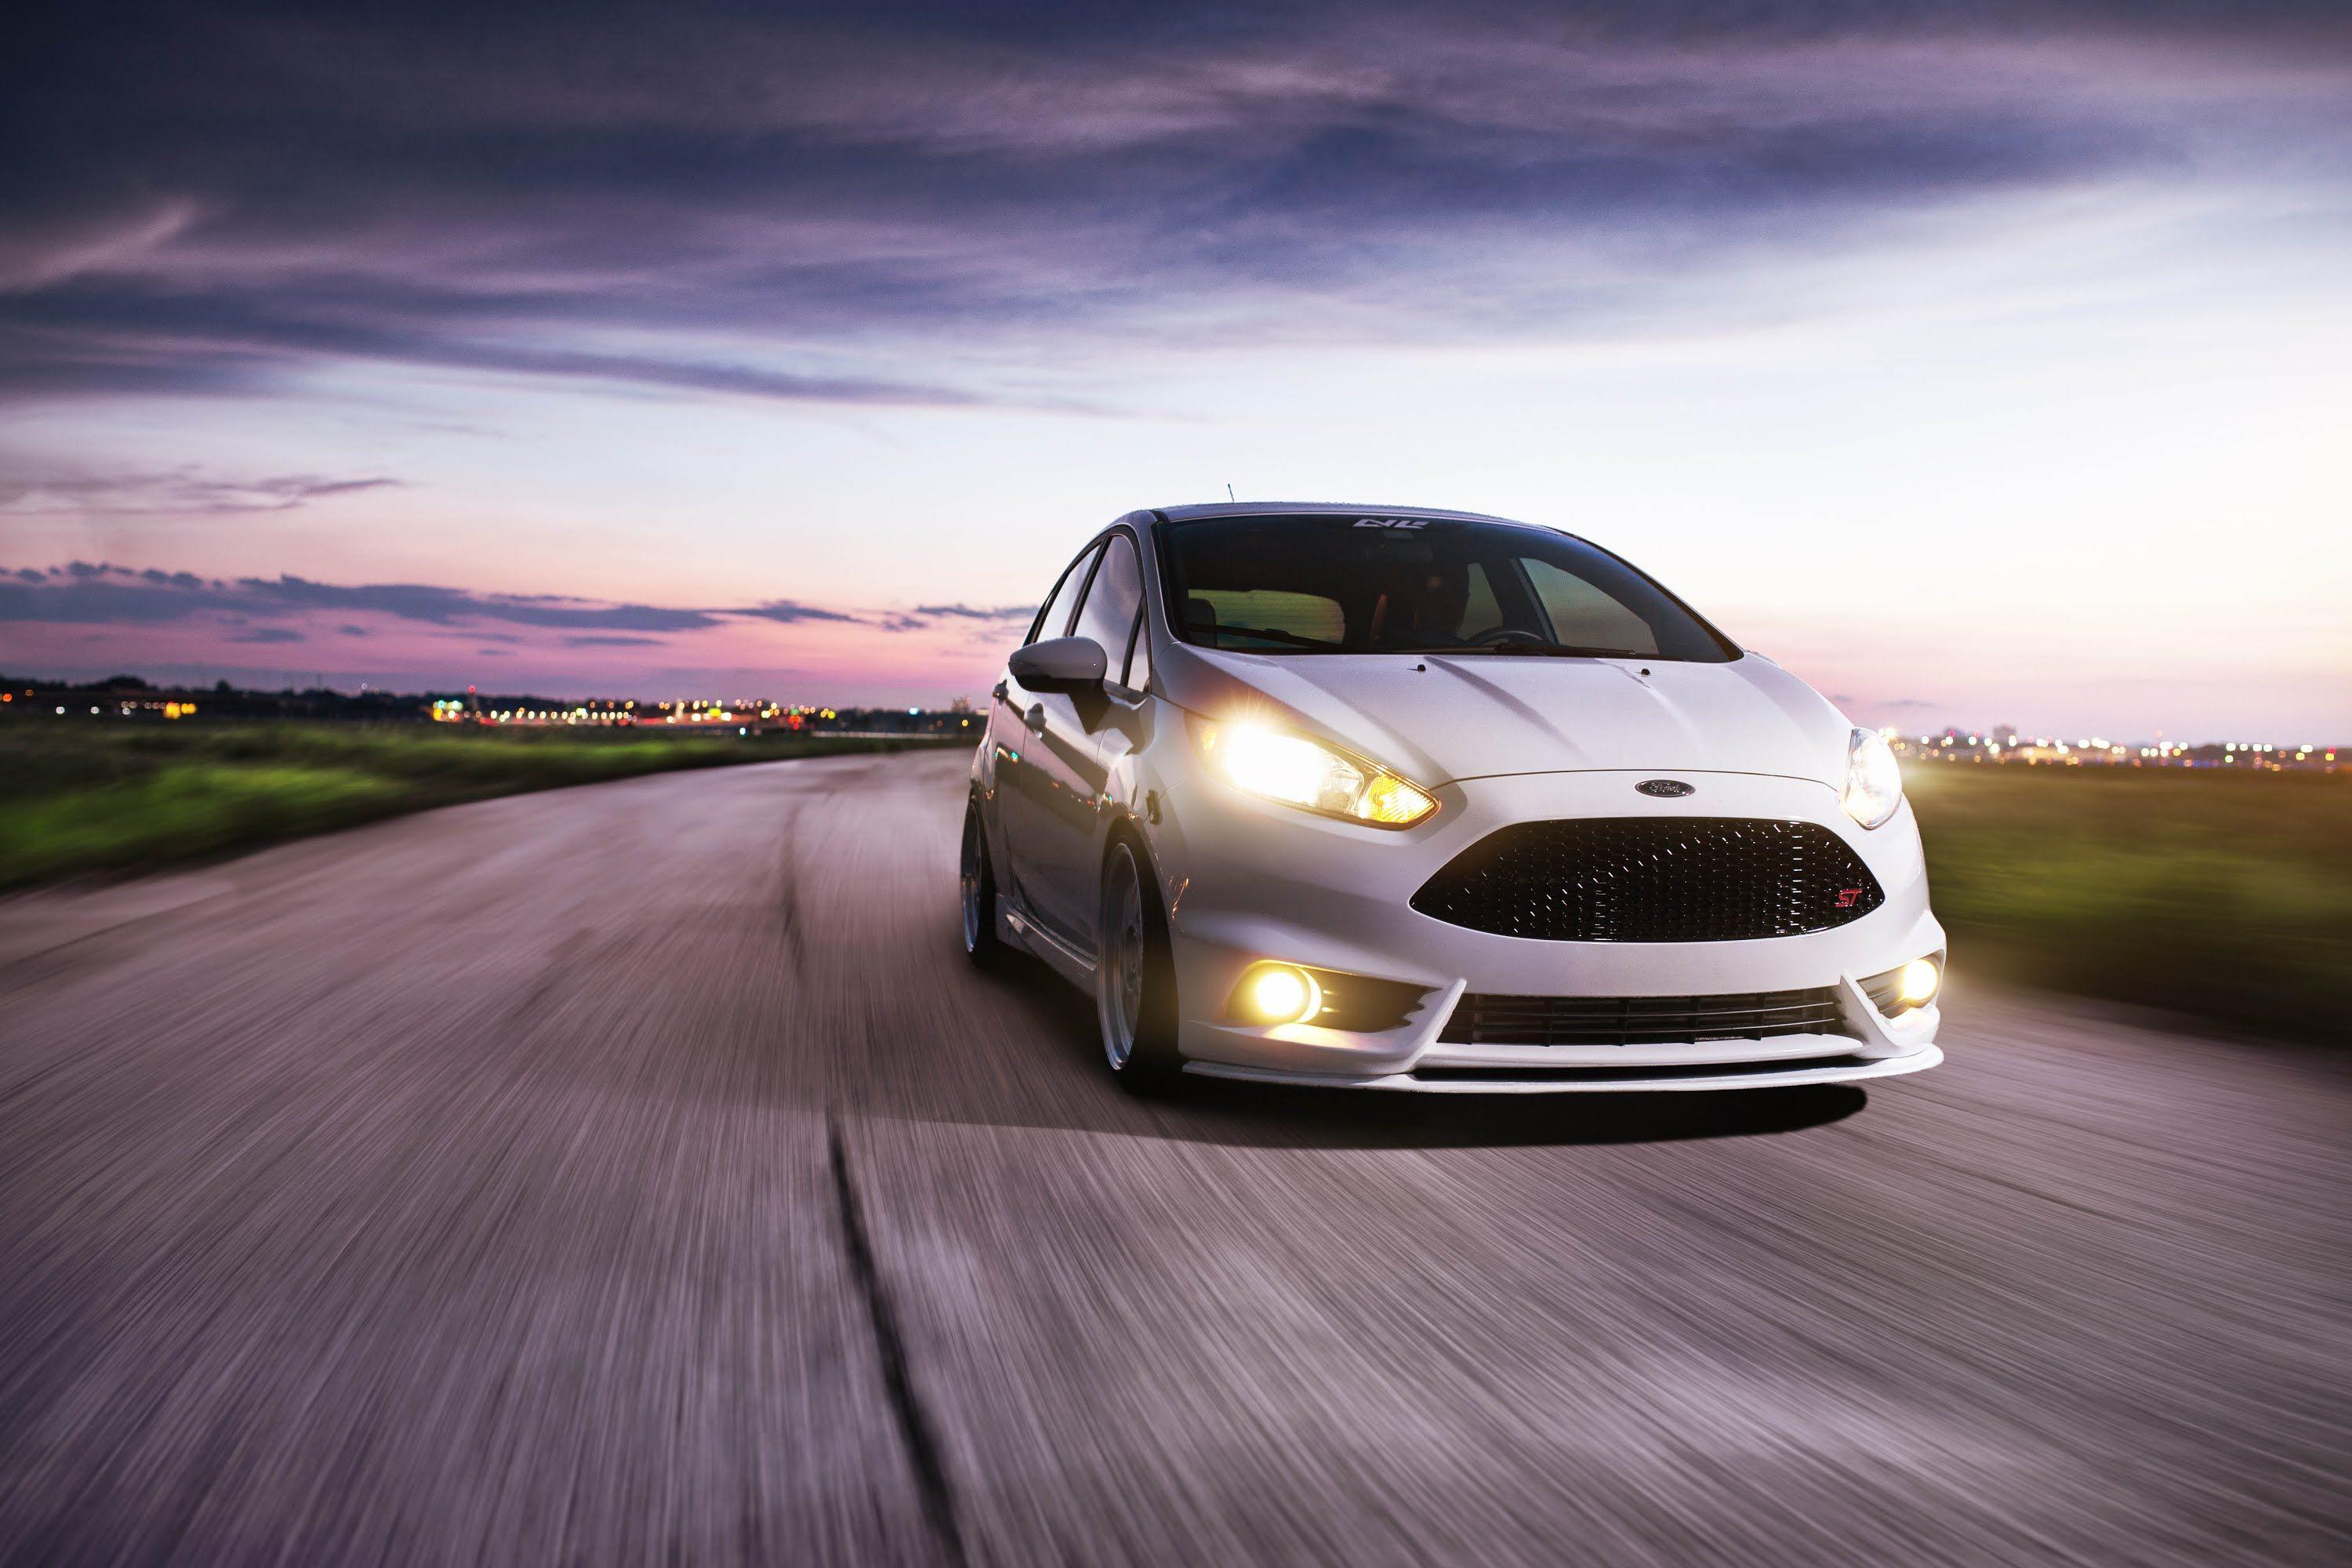 Ford Fiesta St Wallpapers Wallpaper Cave